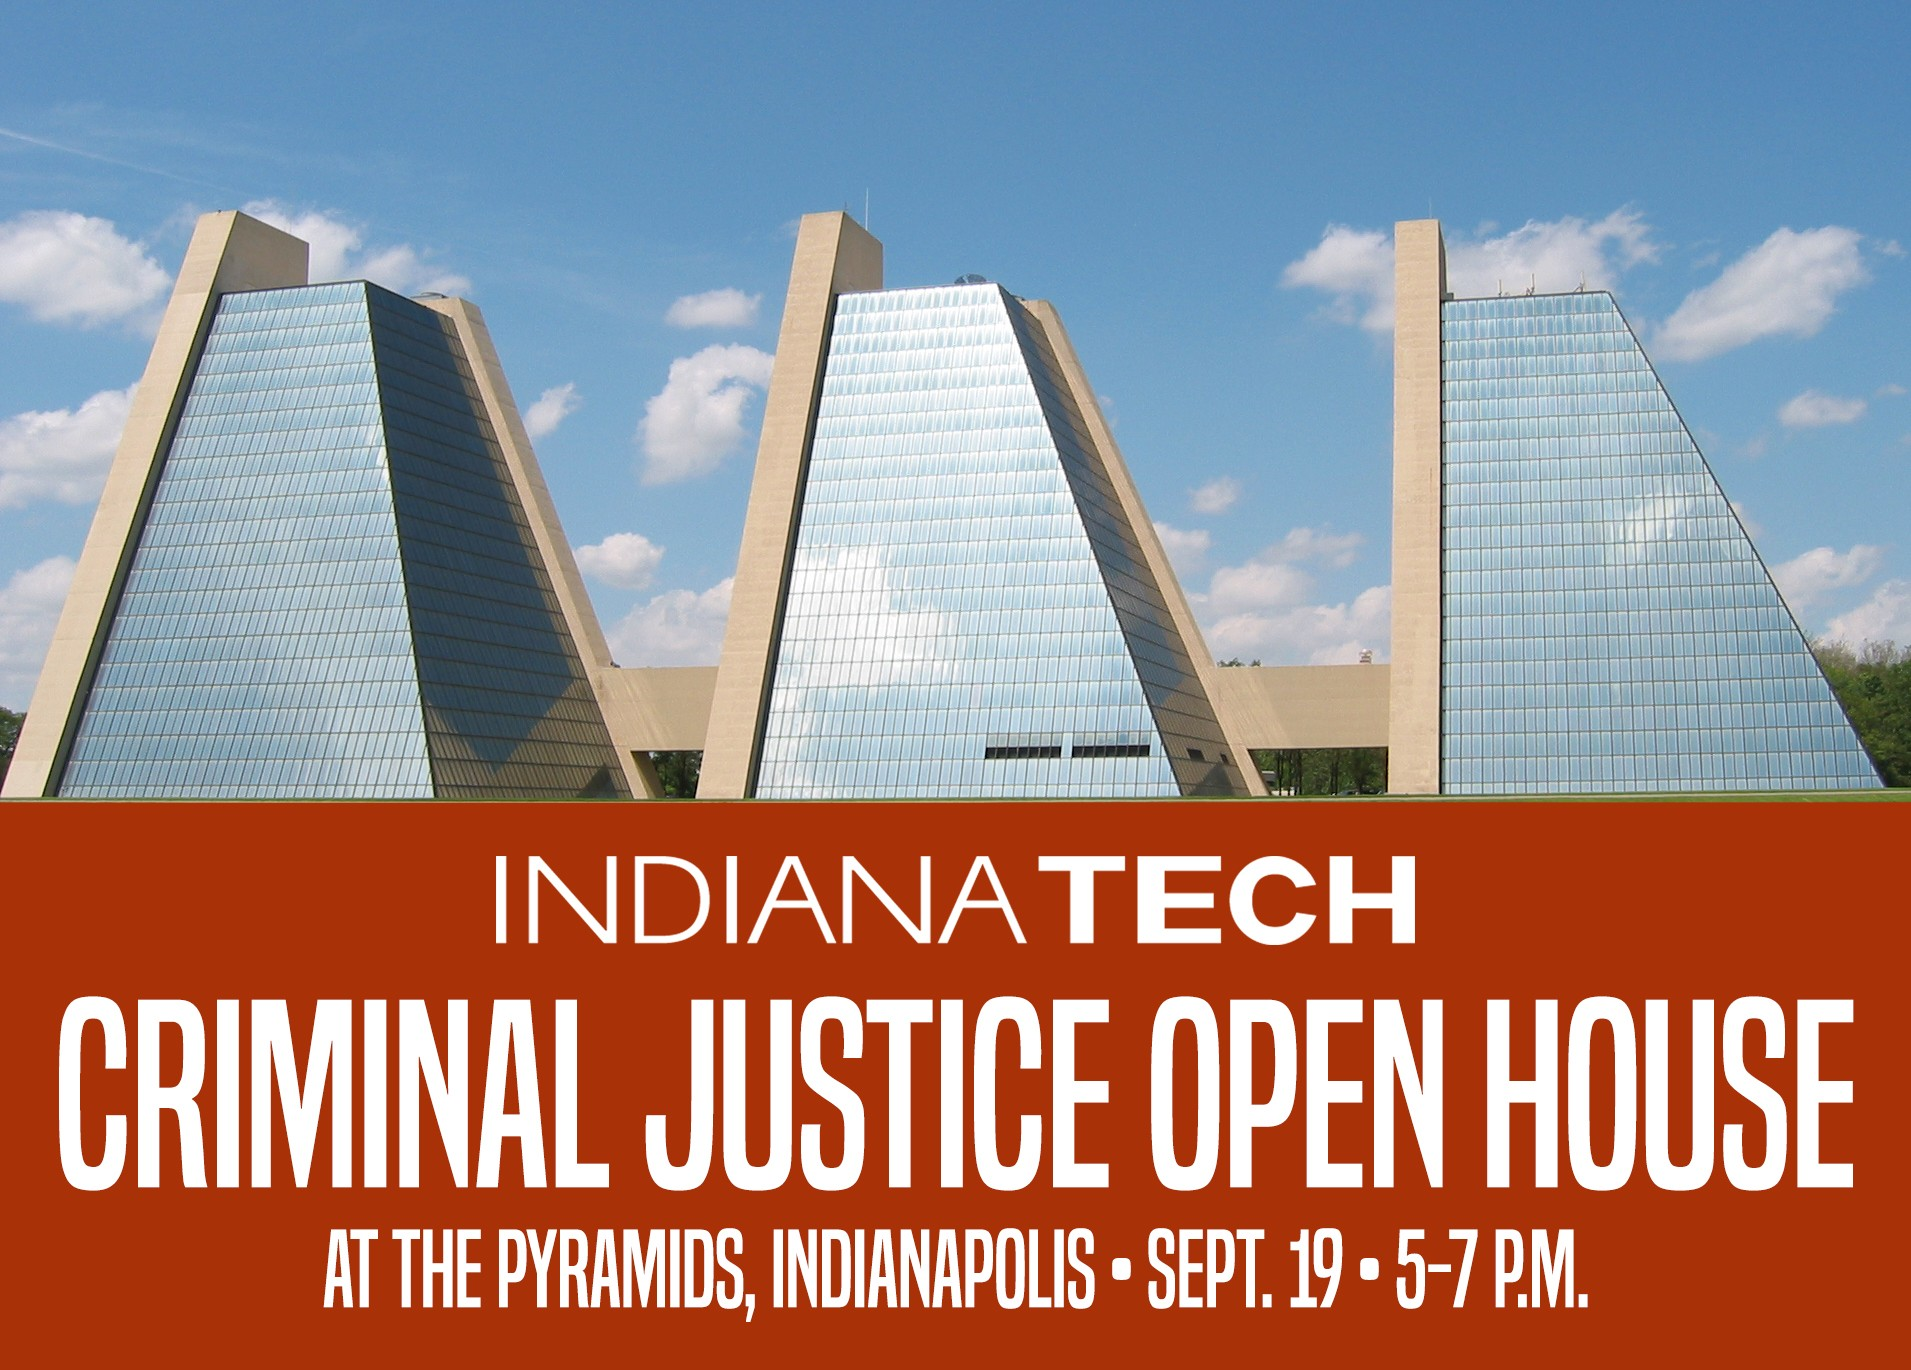 This is an info-graphic that shows the Pyramids complex in Indianapolis, the site of Indiana Tech's campus in that city.